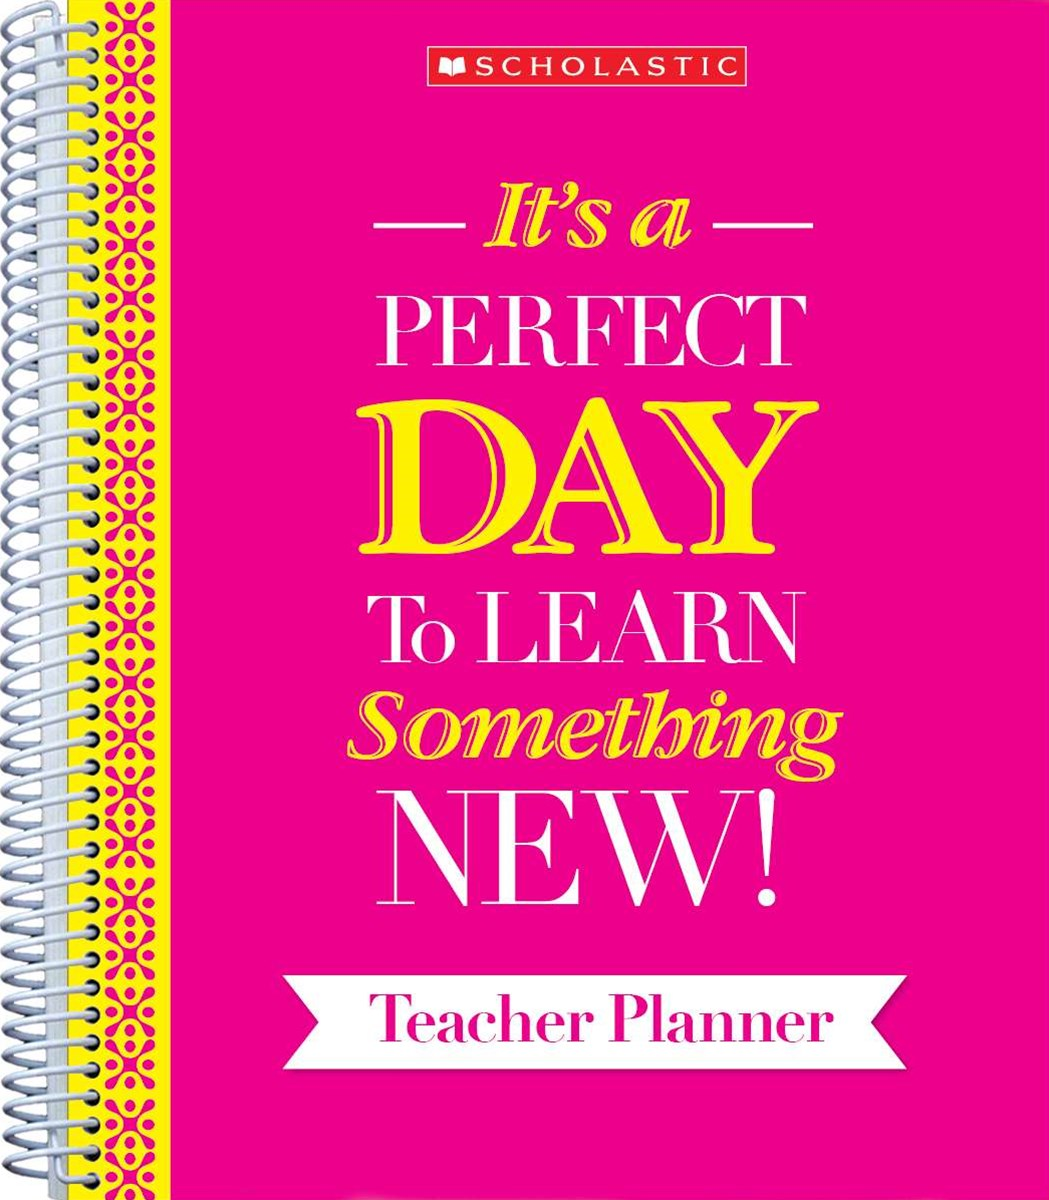 Its a Perfect Day to Learn Something New!